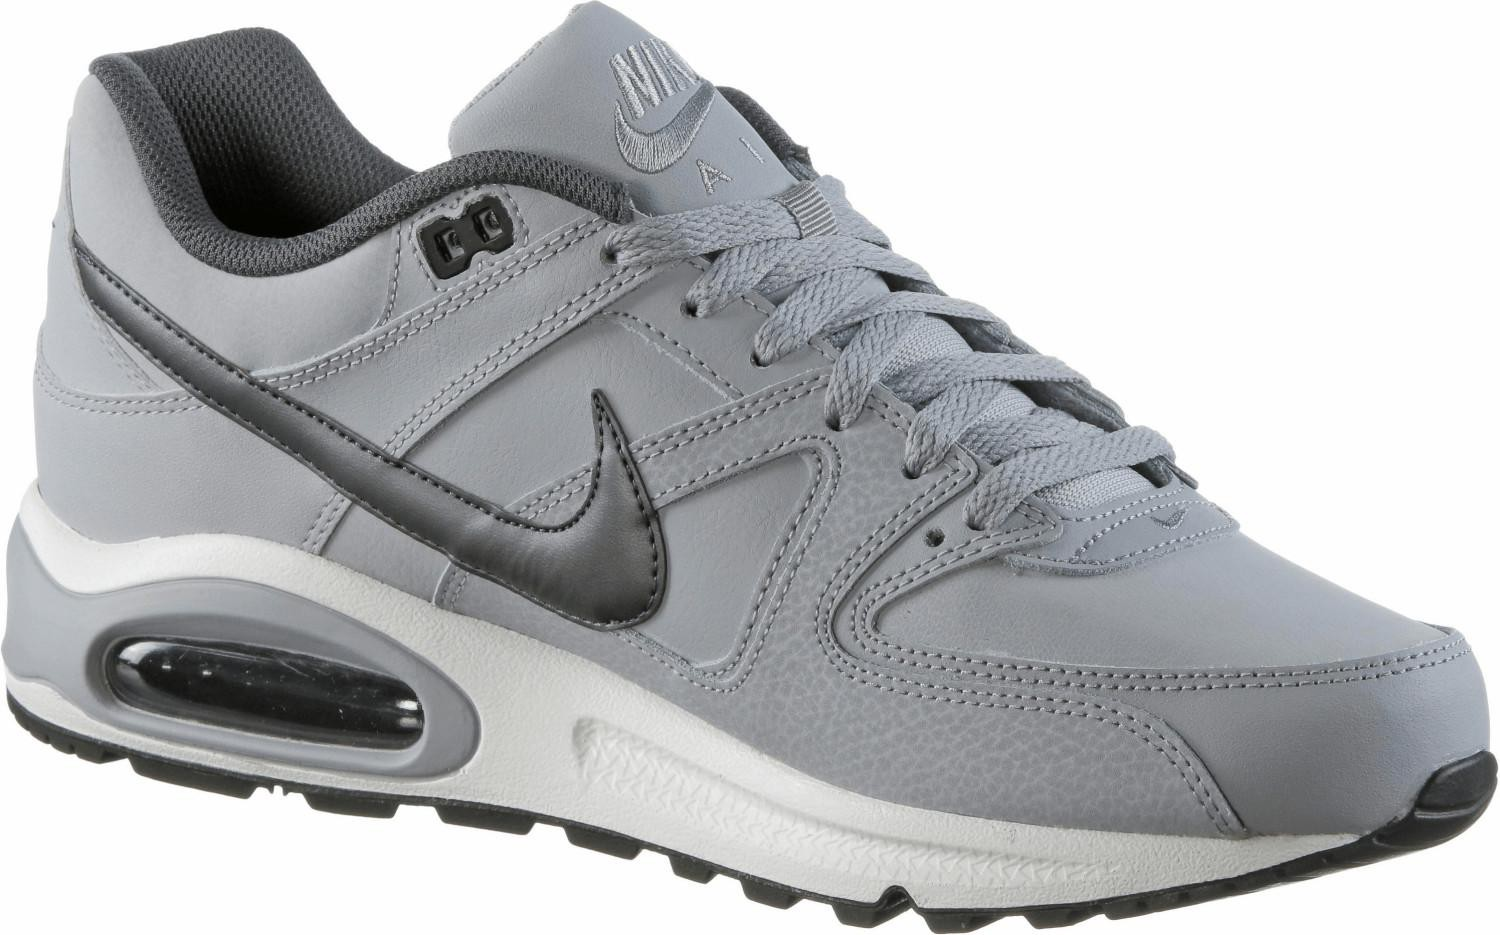 Nike Air Max Command Leather wolf greymetallic dark greyblackwhite günstig